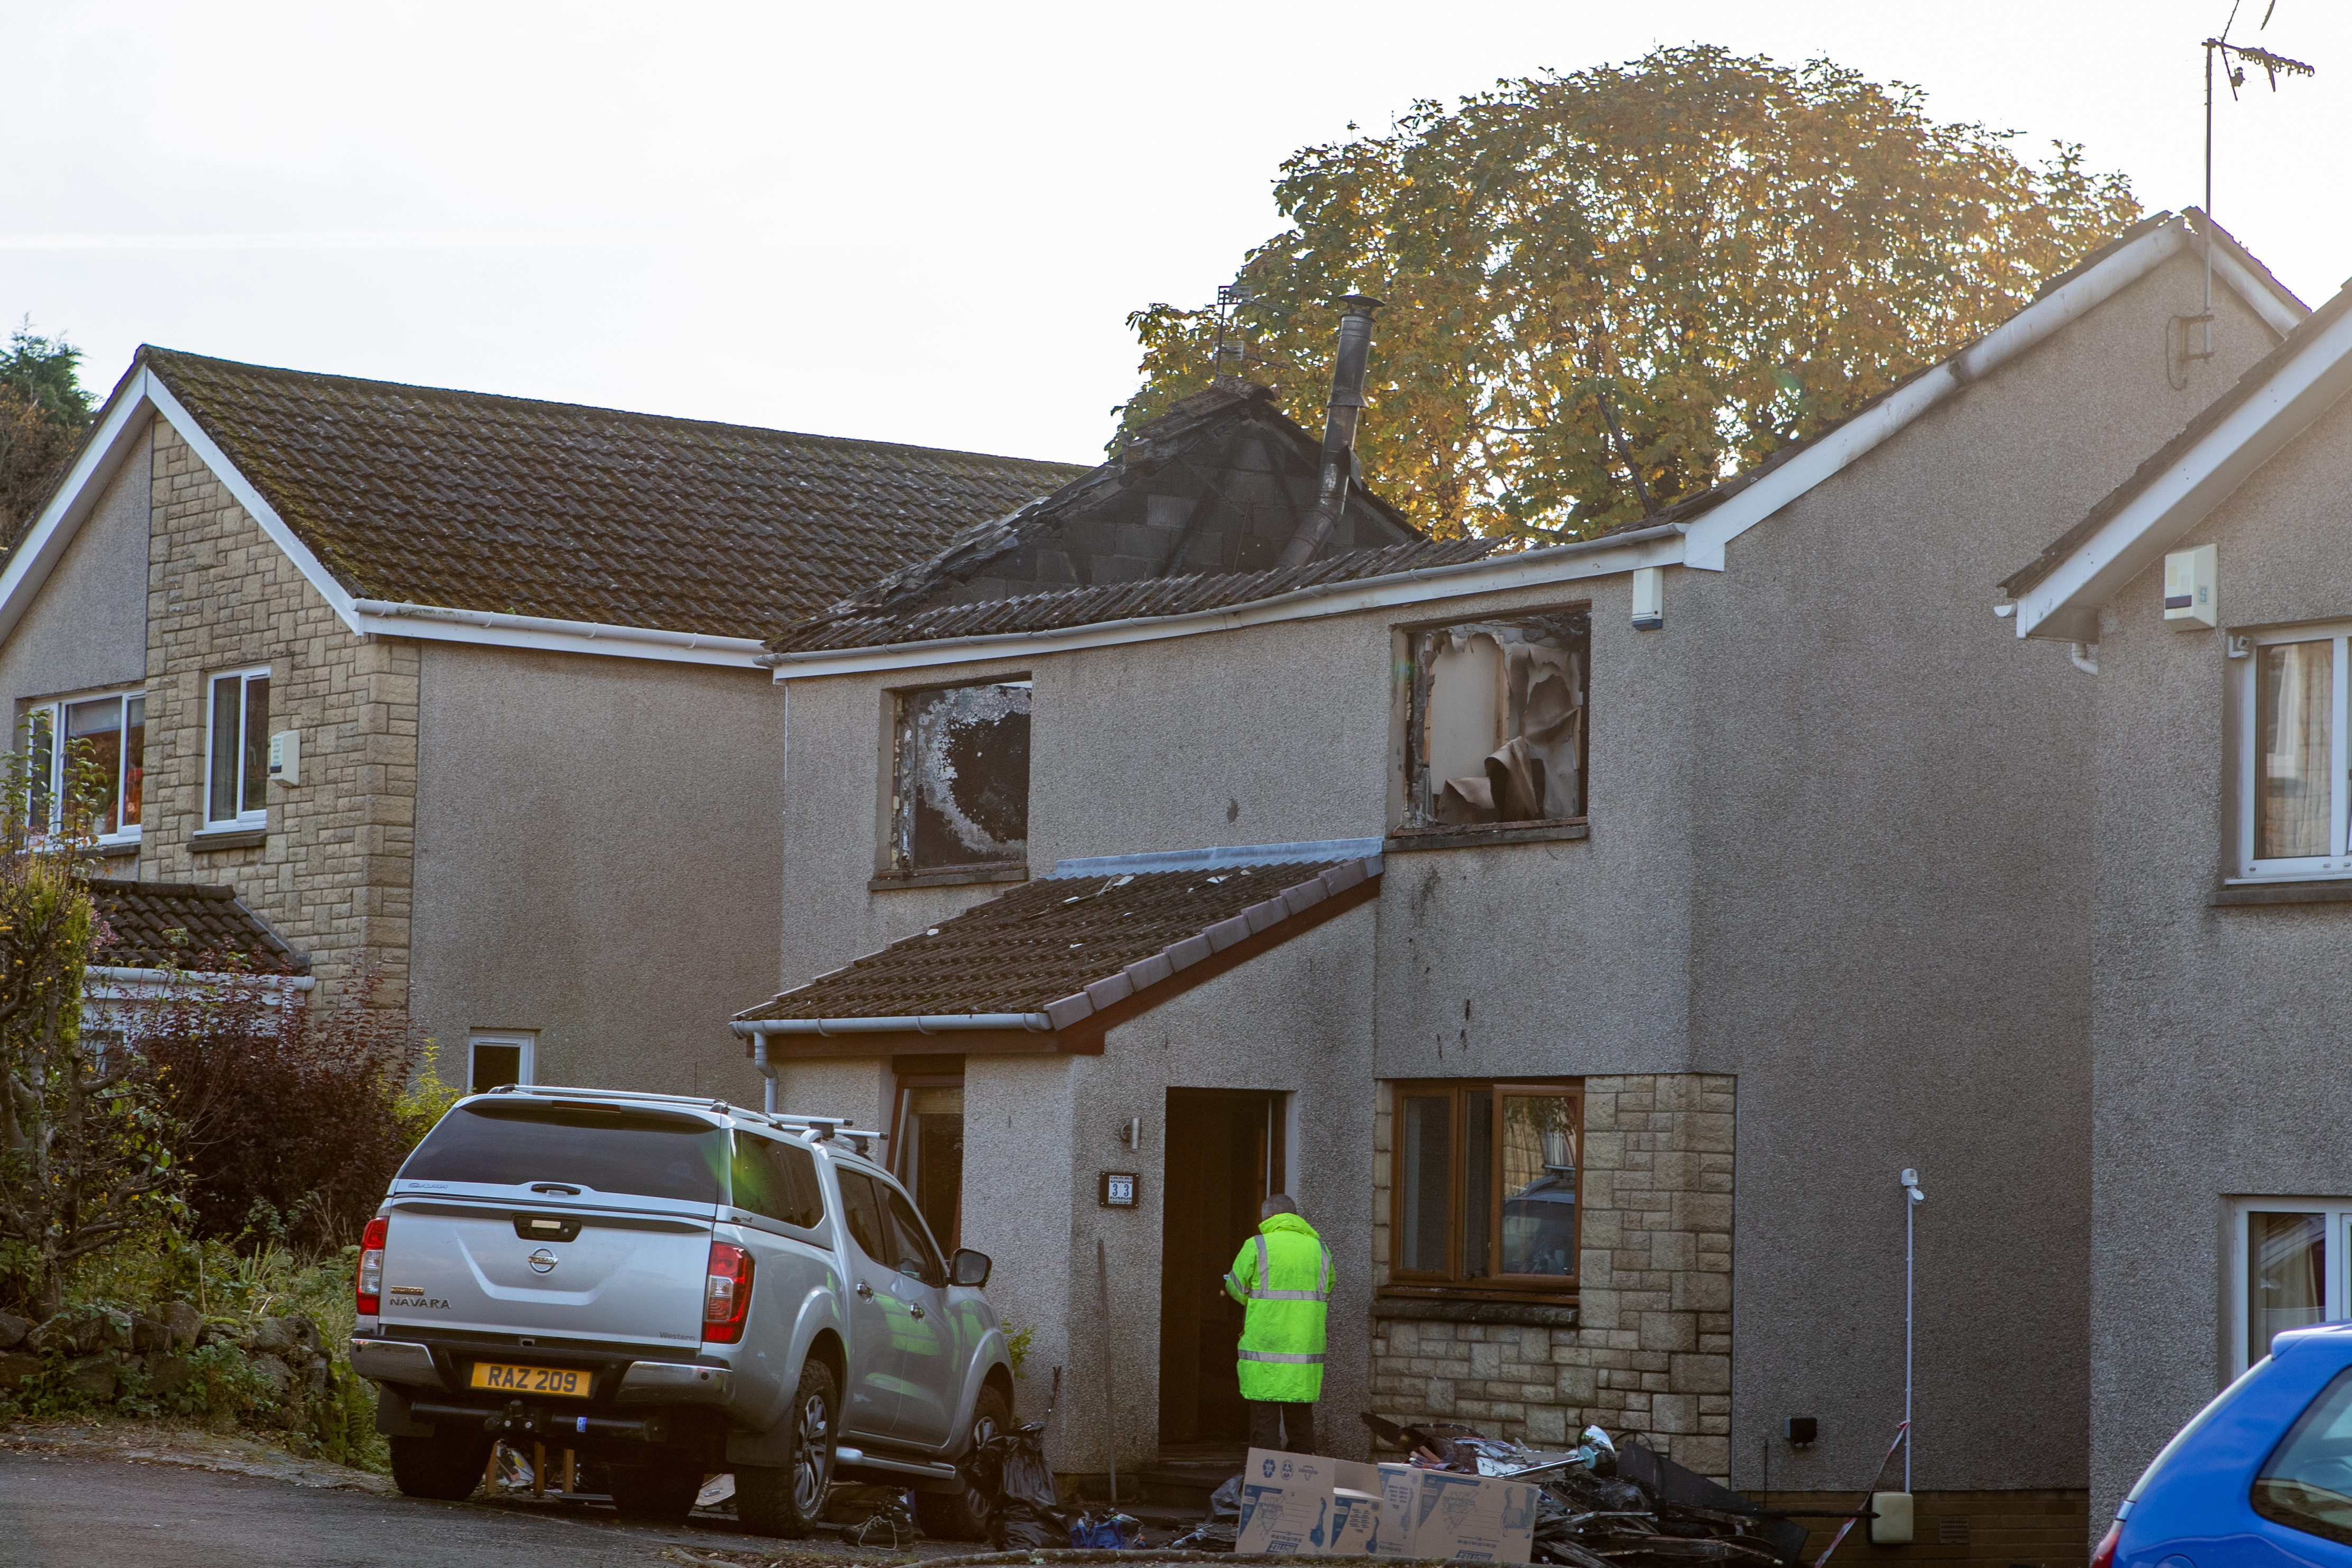 The fire in St Fillans Crescent, Aberdour left a house gutted.